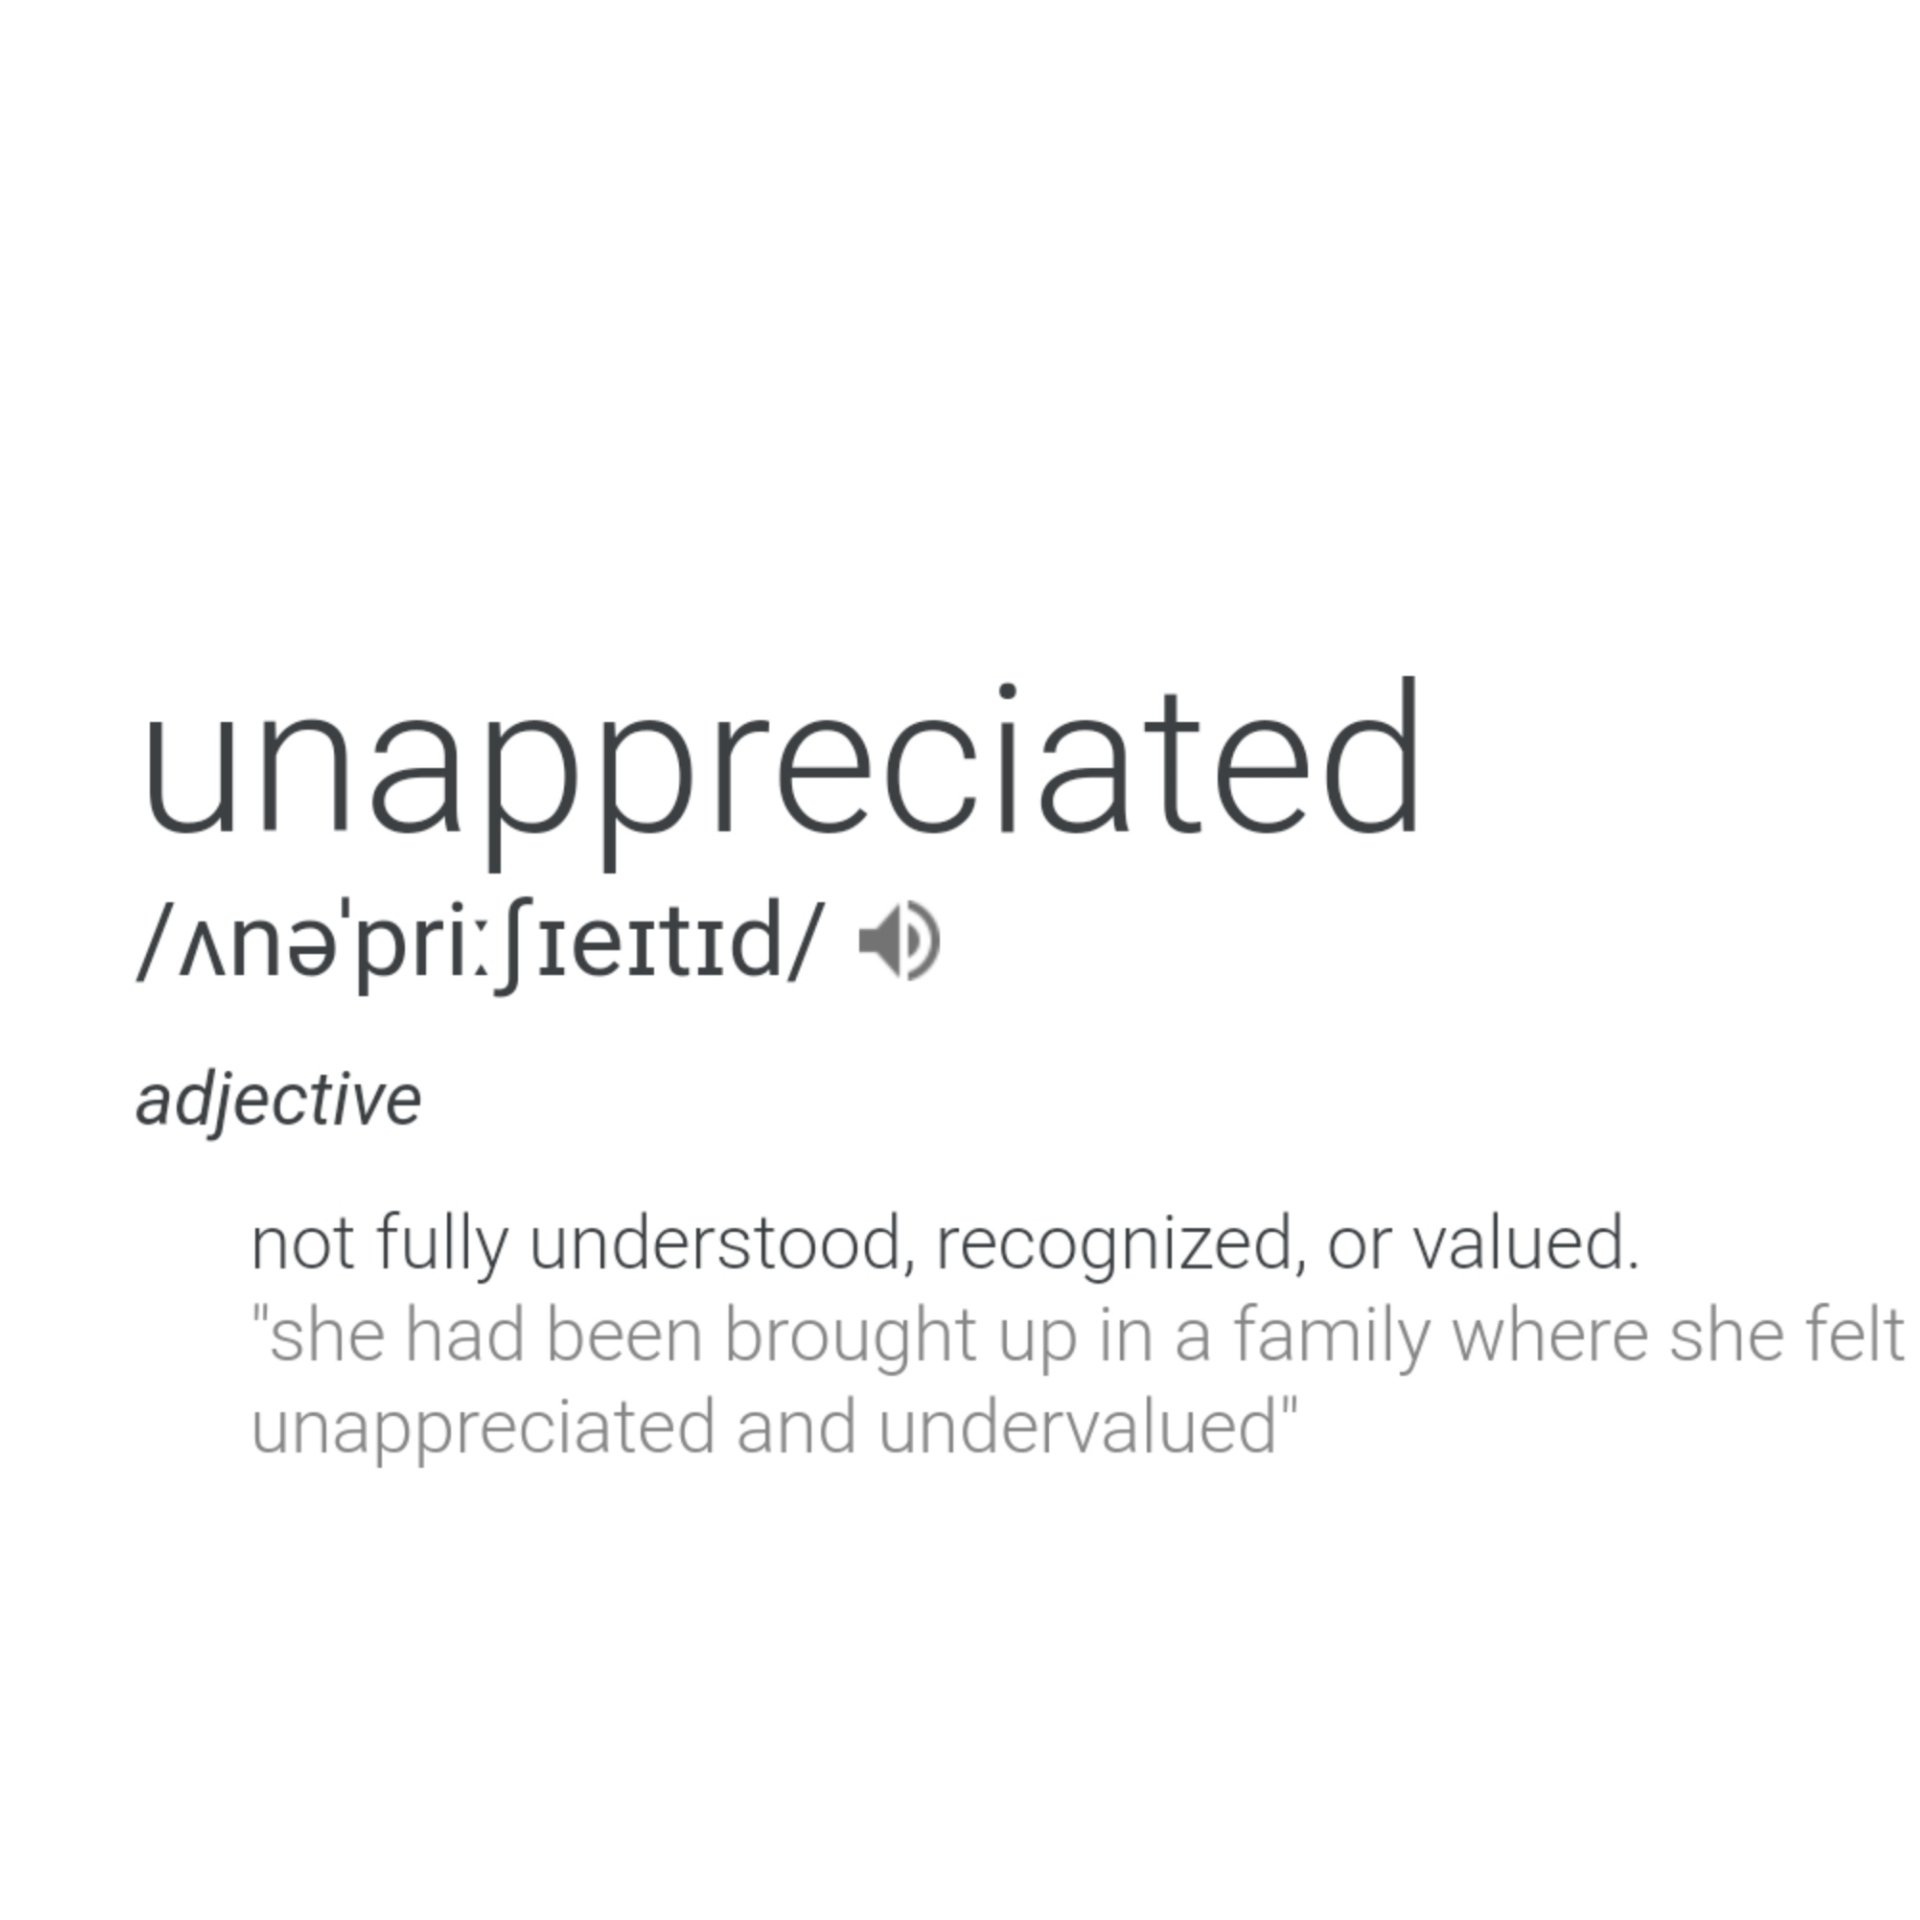 The pain of feeling unappreciated.